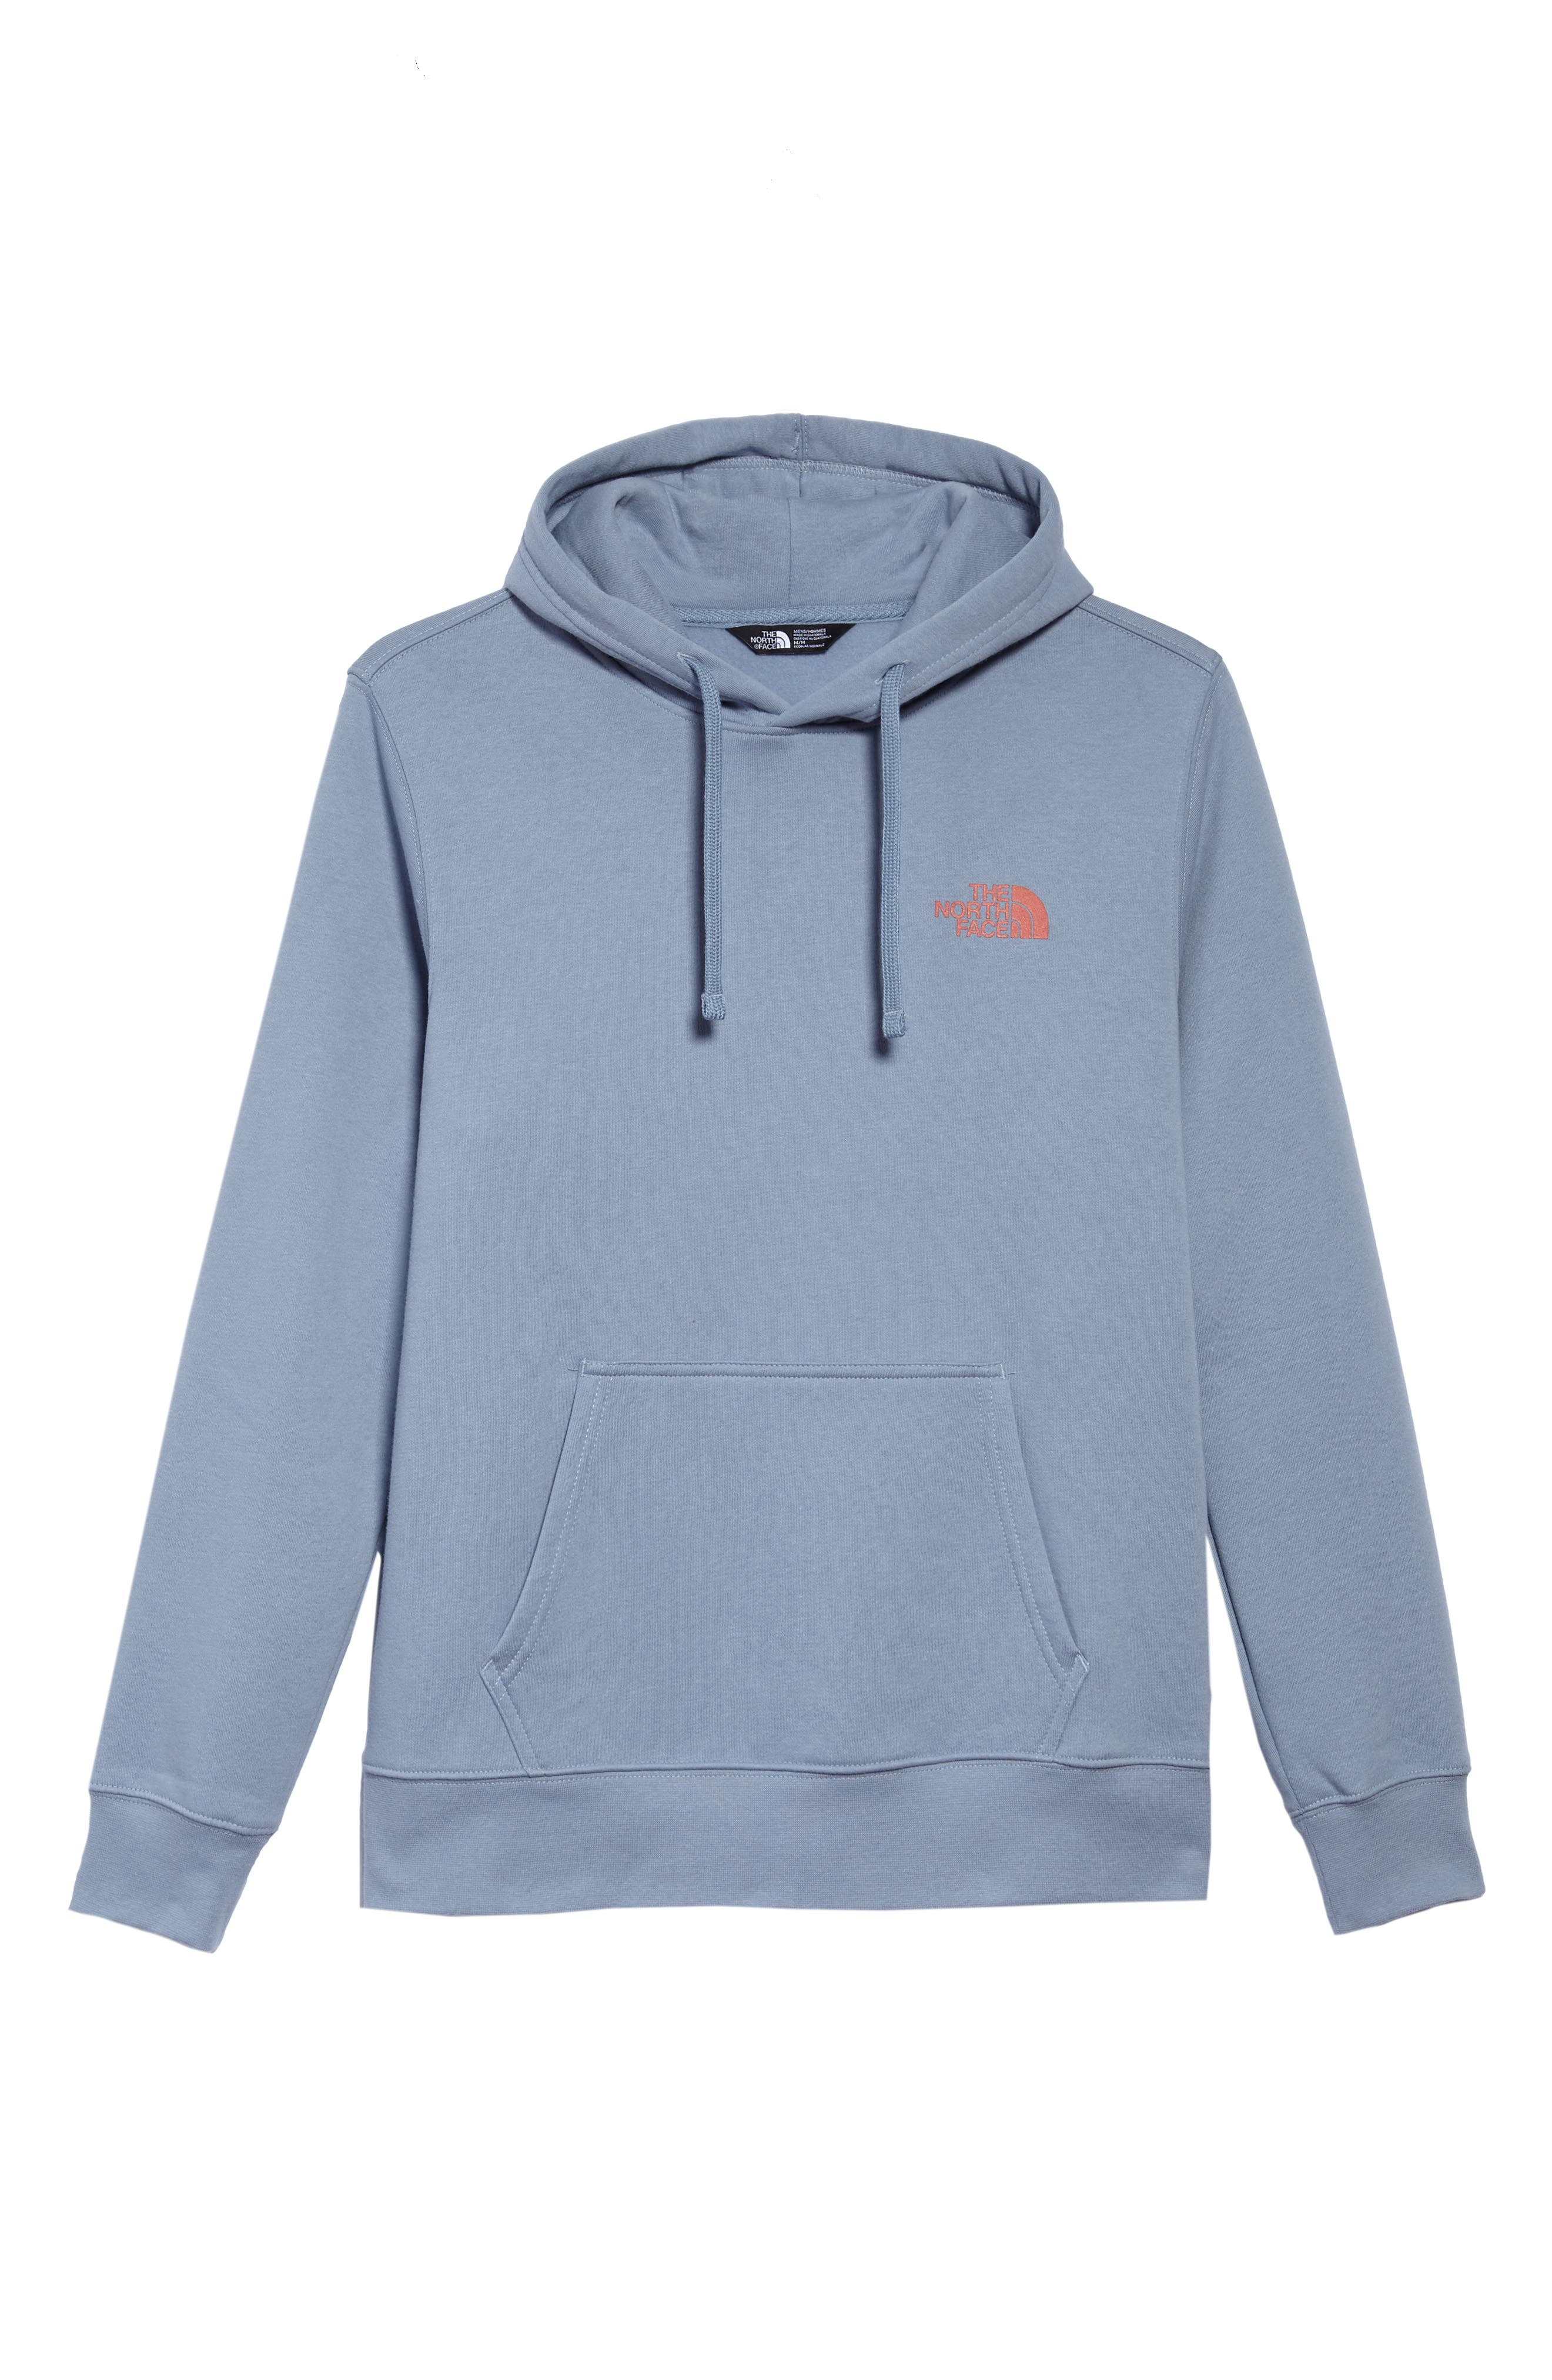 Red Box Hoodie,                             Alternate thumbnail 6, color,                             Gull Blue